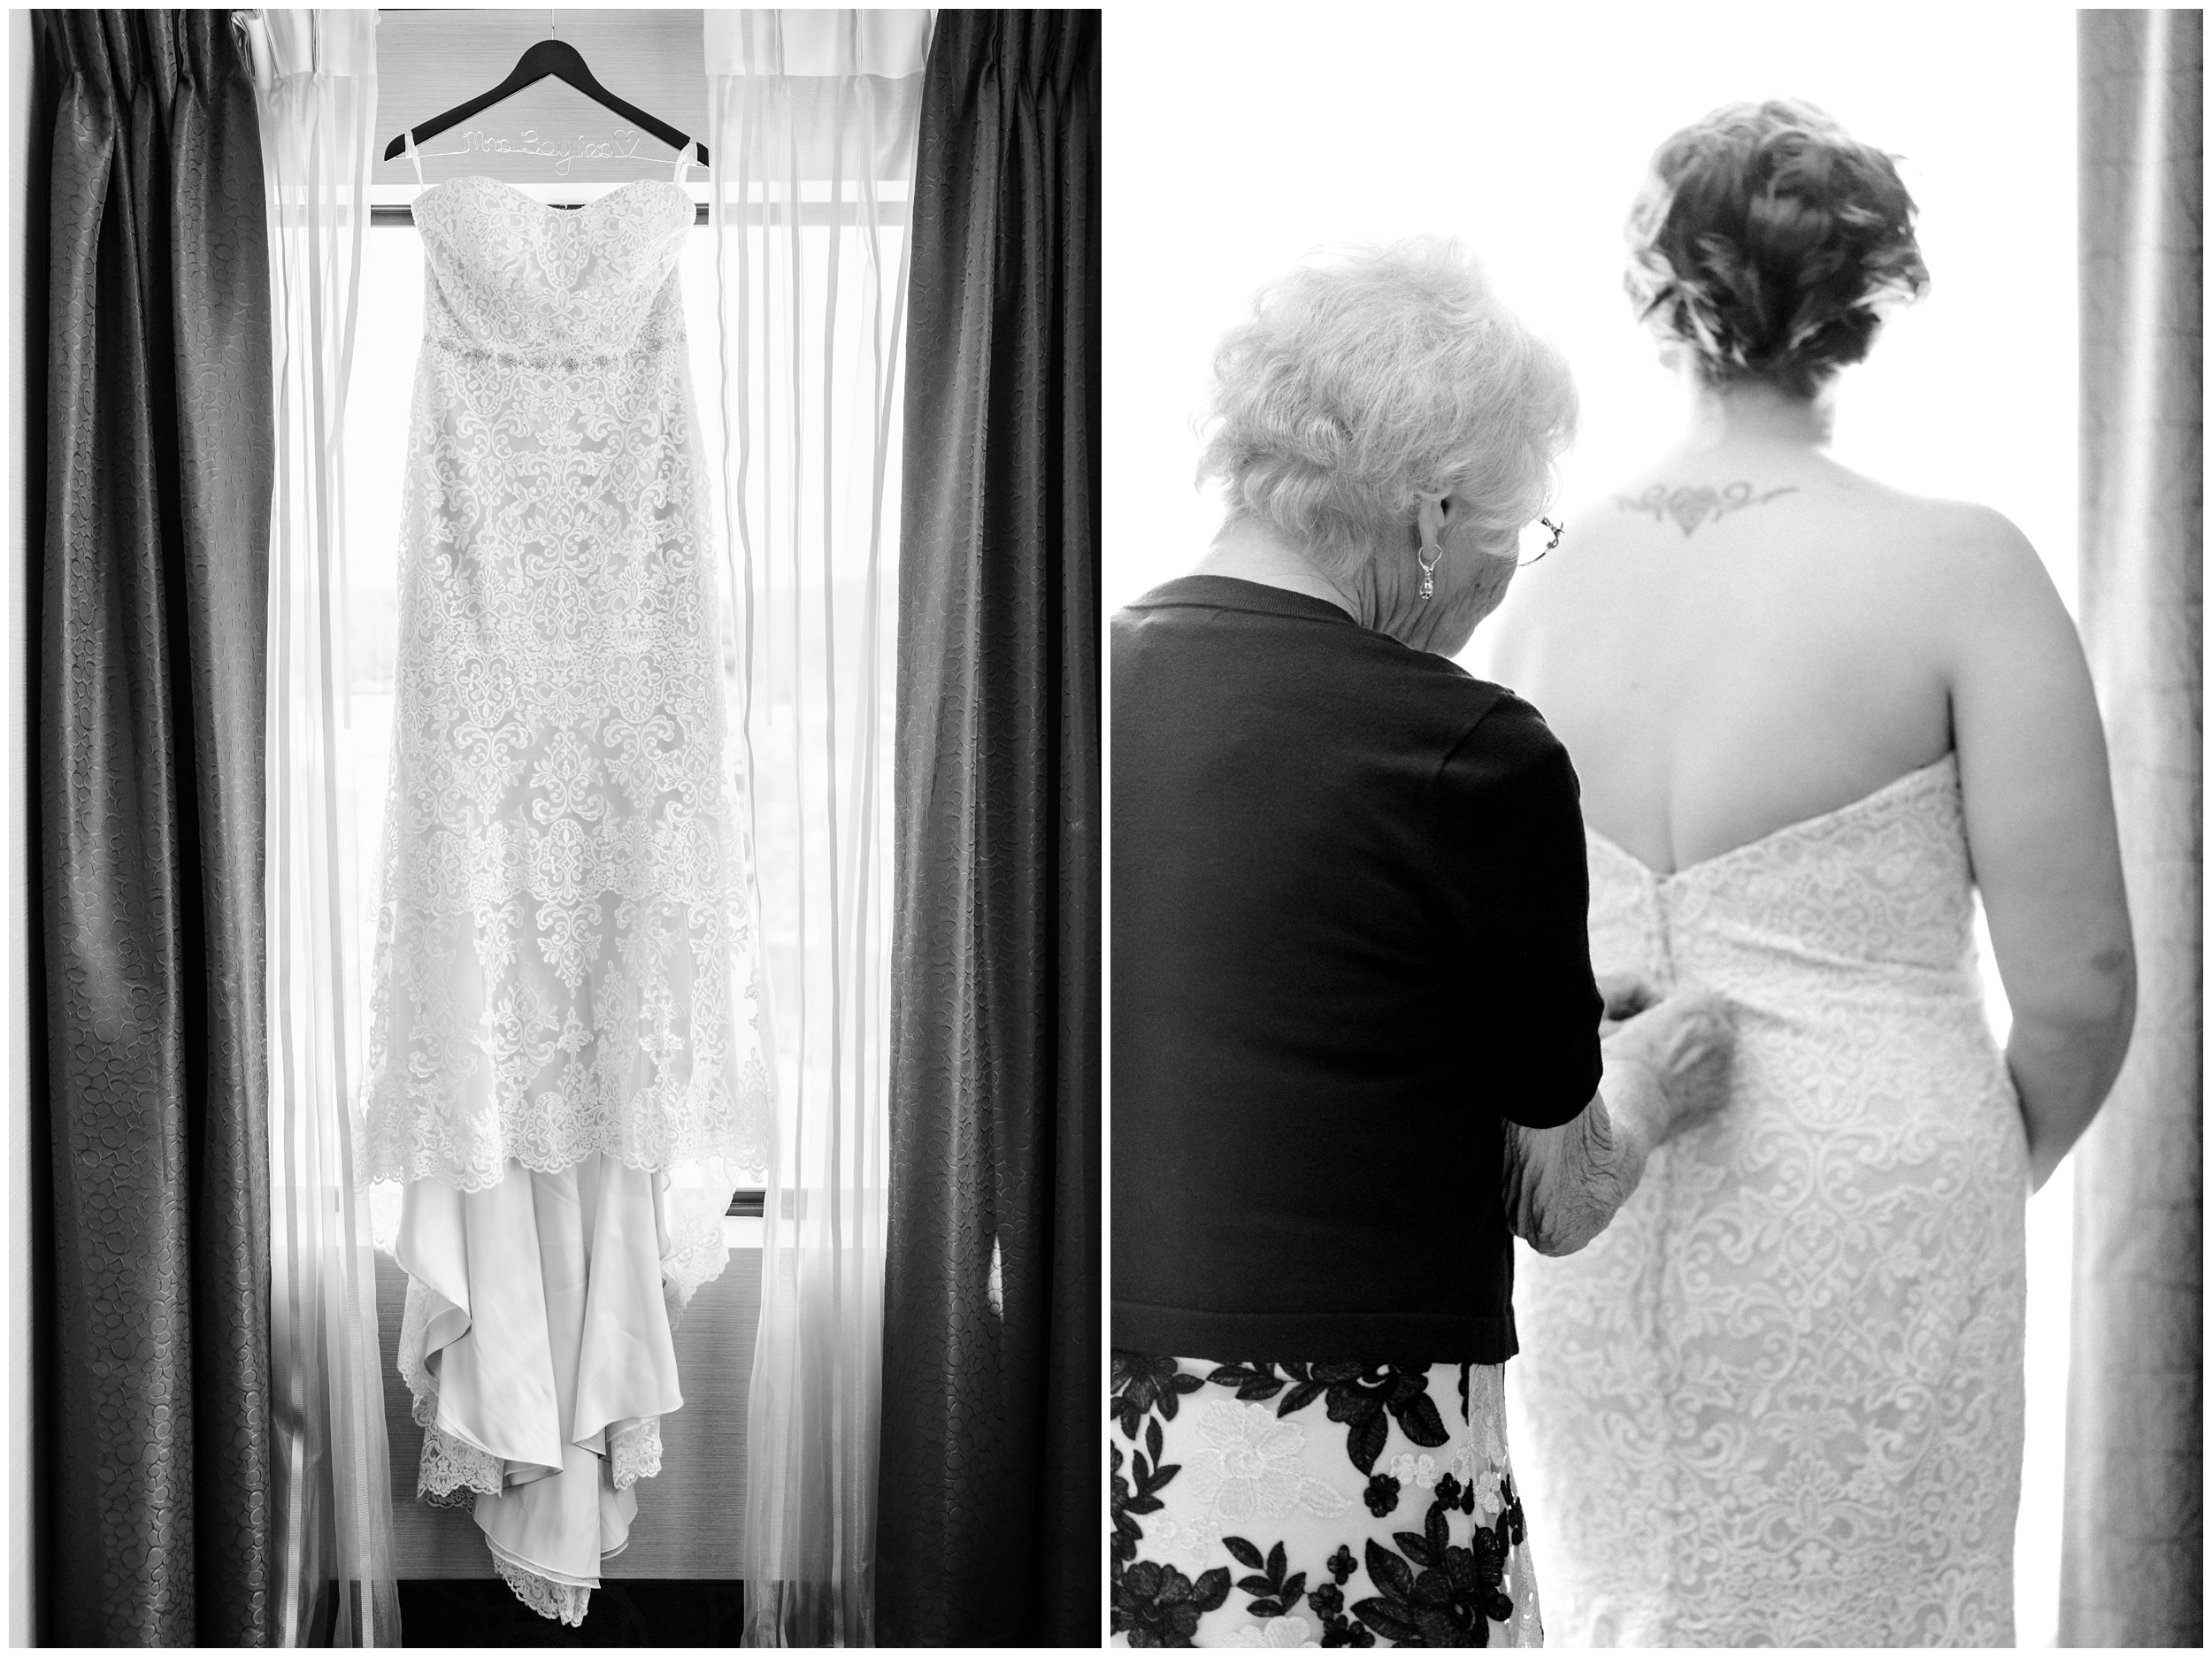 beautiful wedding dress, grandmother buttoning wedding dress